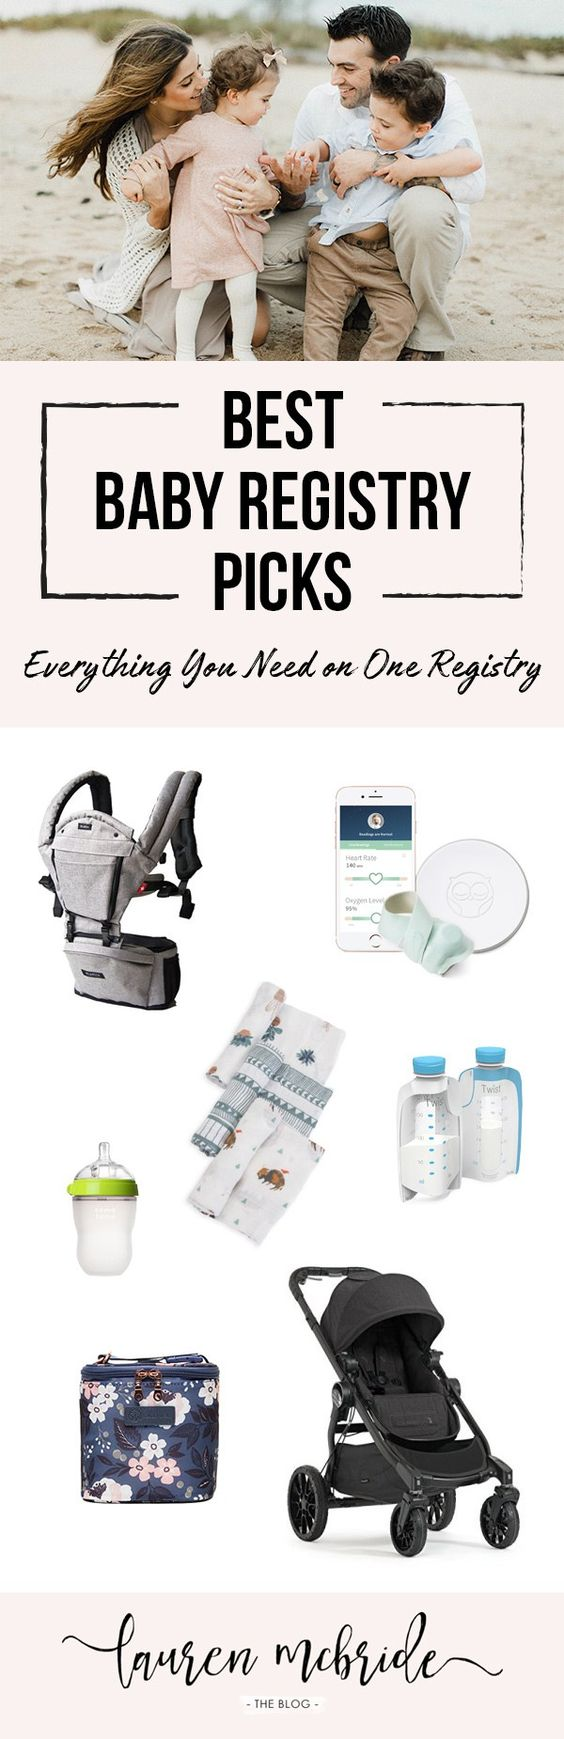 Mom picks: The best baby registry items according to style blogger Lauren McBride, experienced mom of 3. Add it all to Babylist, the best online baby registry. Babylist lets you add any item from any store to one beautiful list.